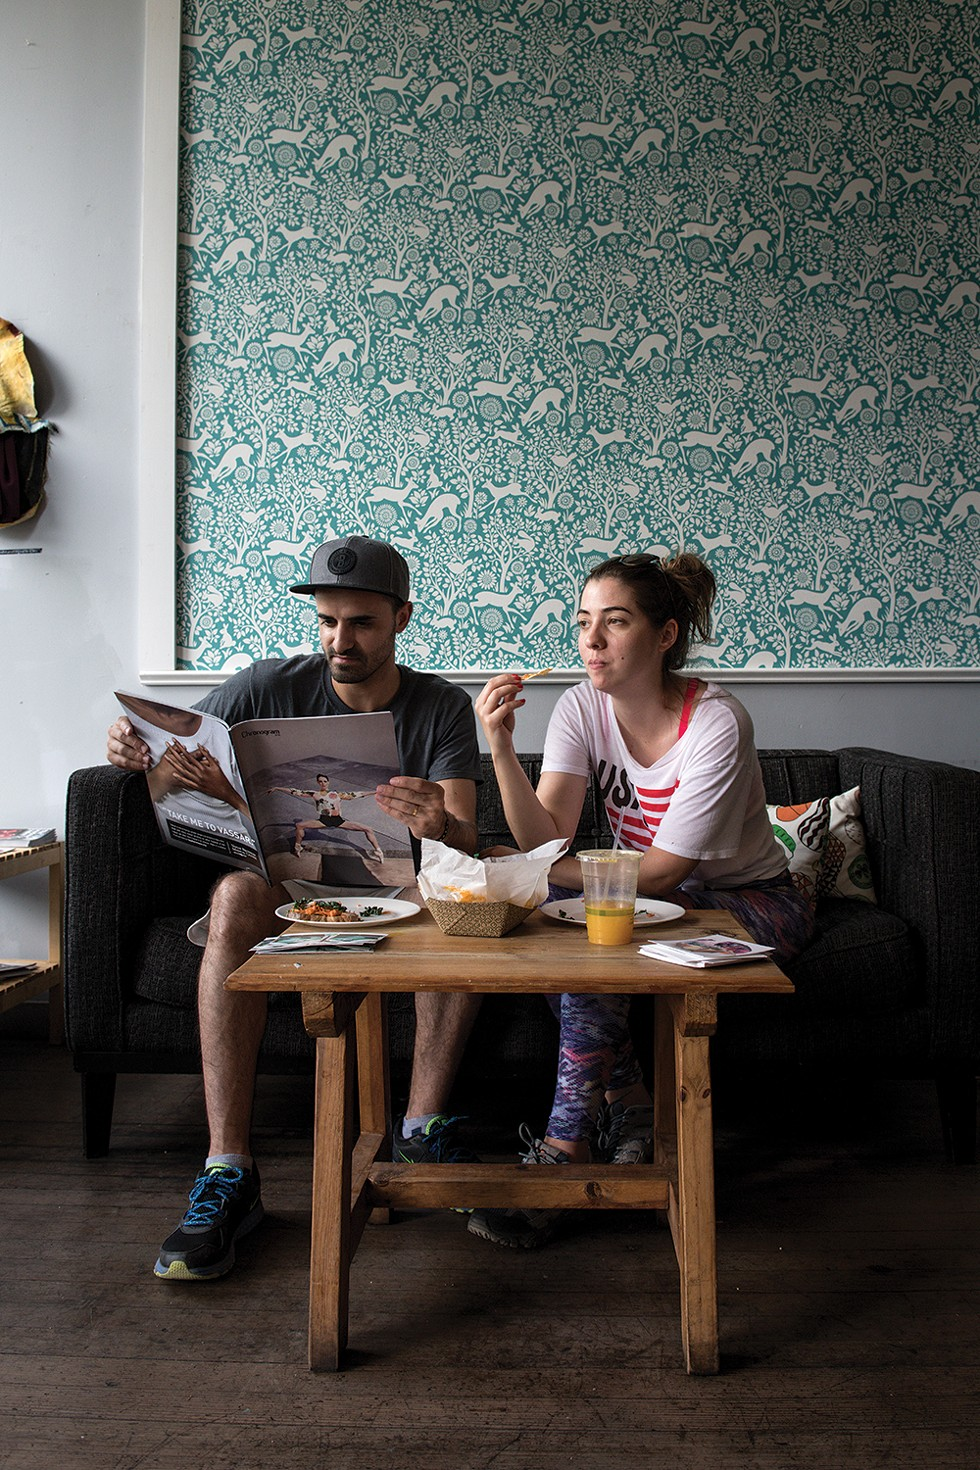 Sandro Figueiredo and Joana Martins enjoying Chronogram and lunch at Conscious Fork. - PHOTO: CHRISTINE ASHBURN